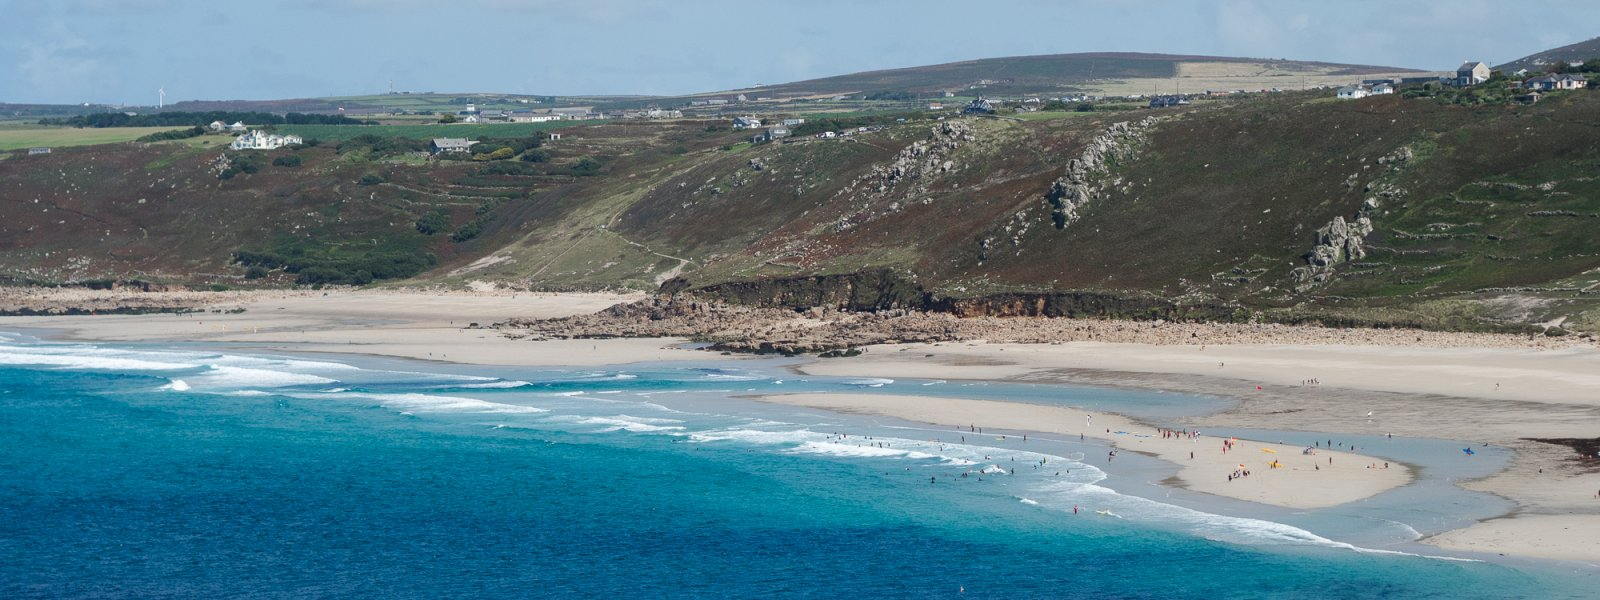 Sennen to Land's End: Searching for Shipwrecks